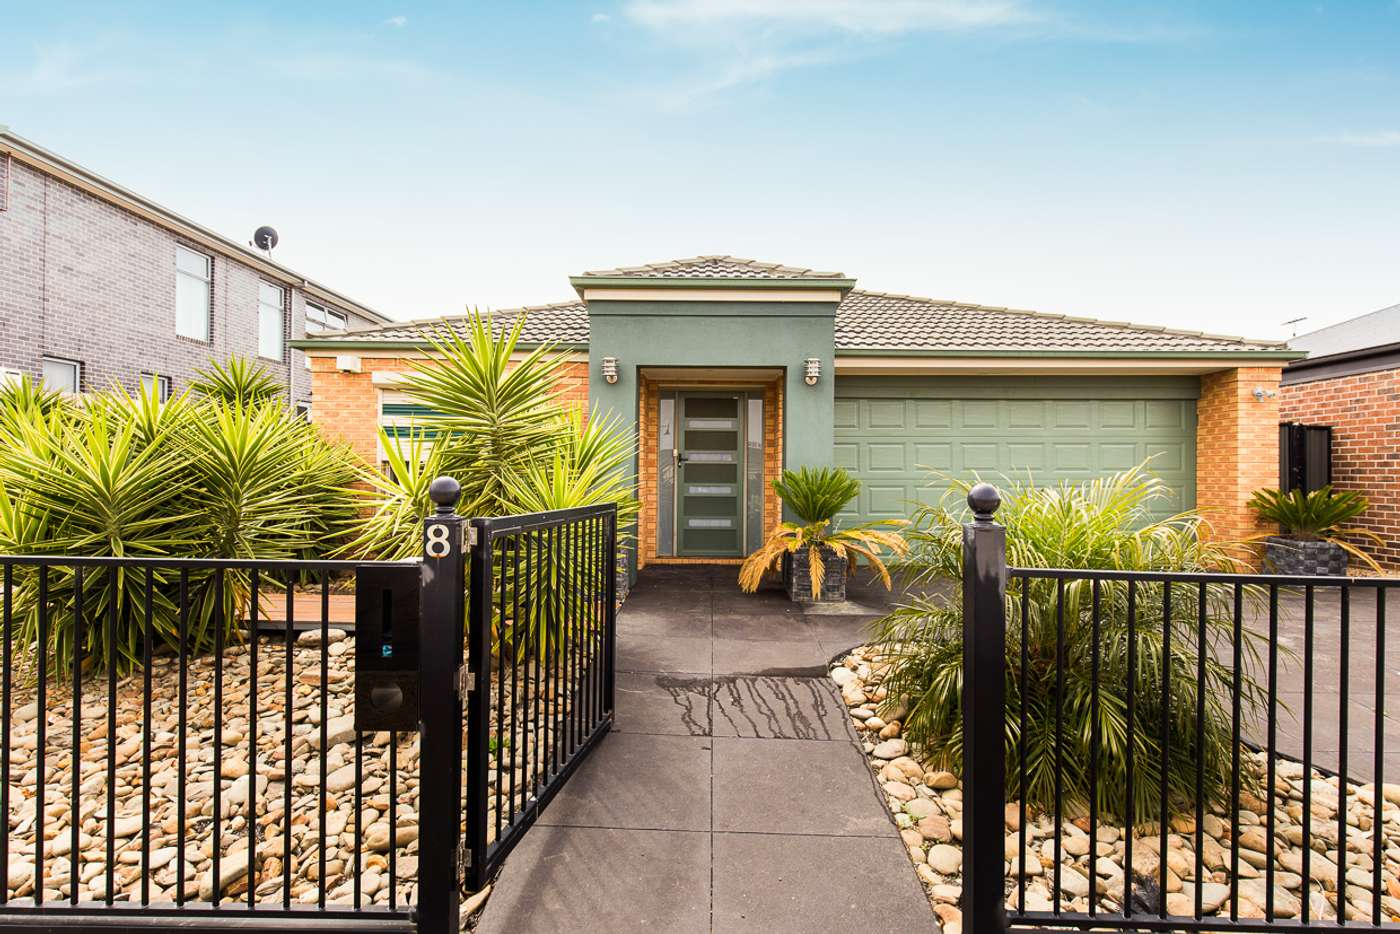 Main view of Homely house listing, 8 Pendragon Crescent, Derrimut VIC 3030